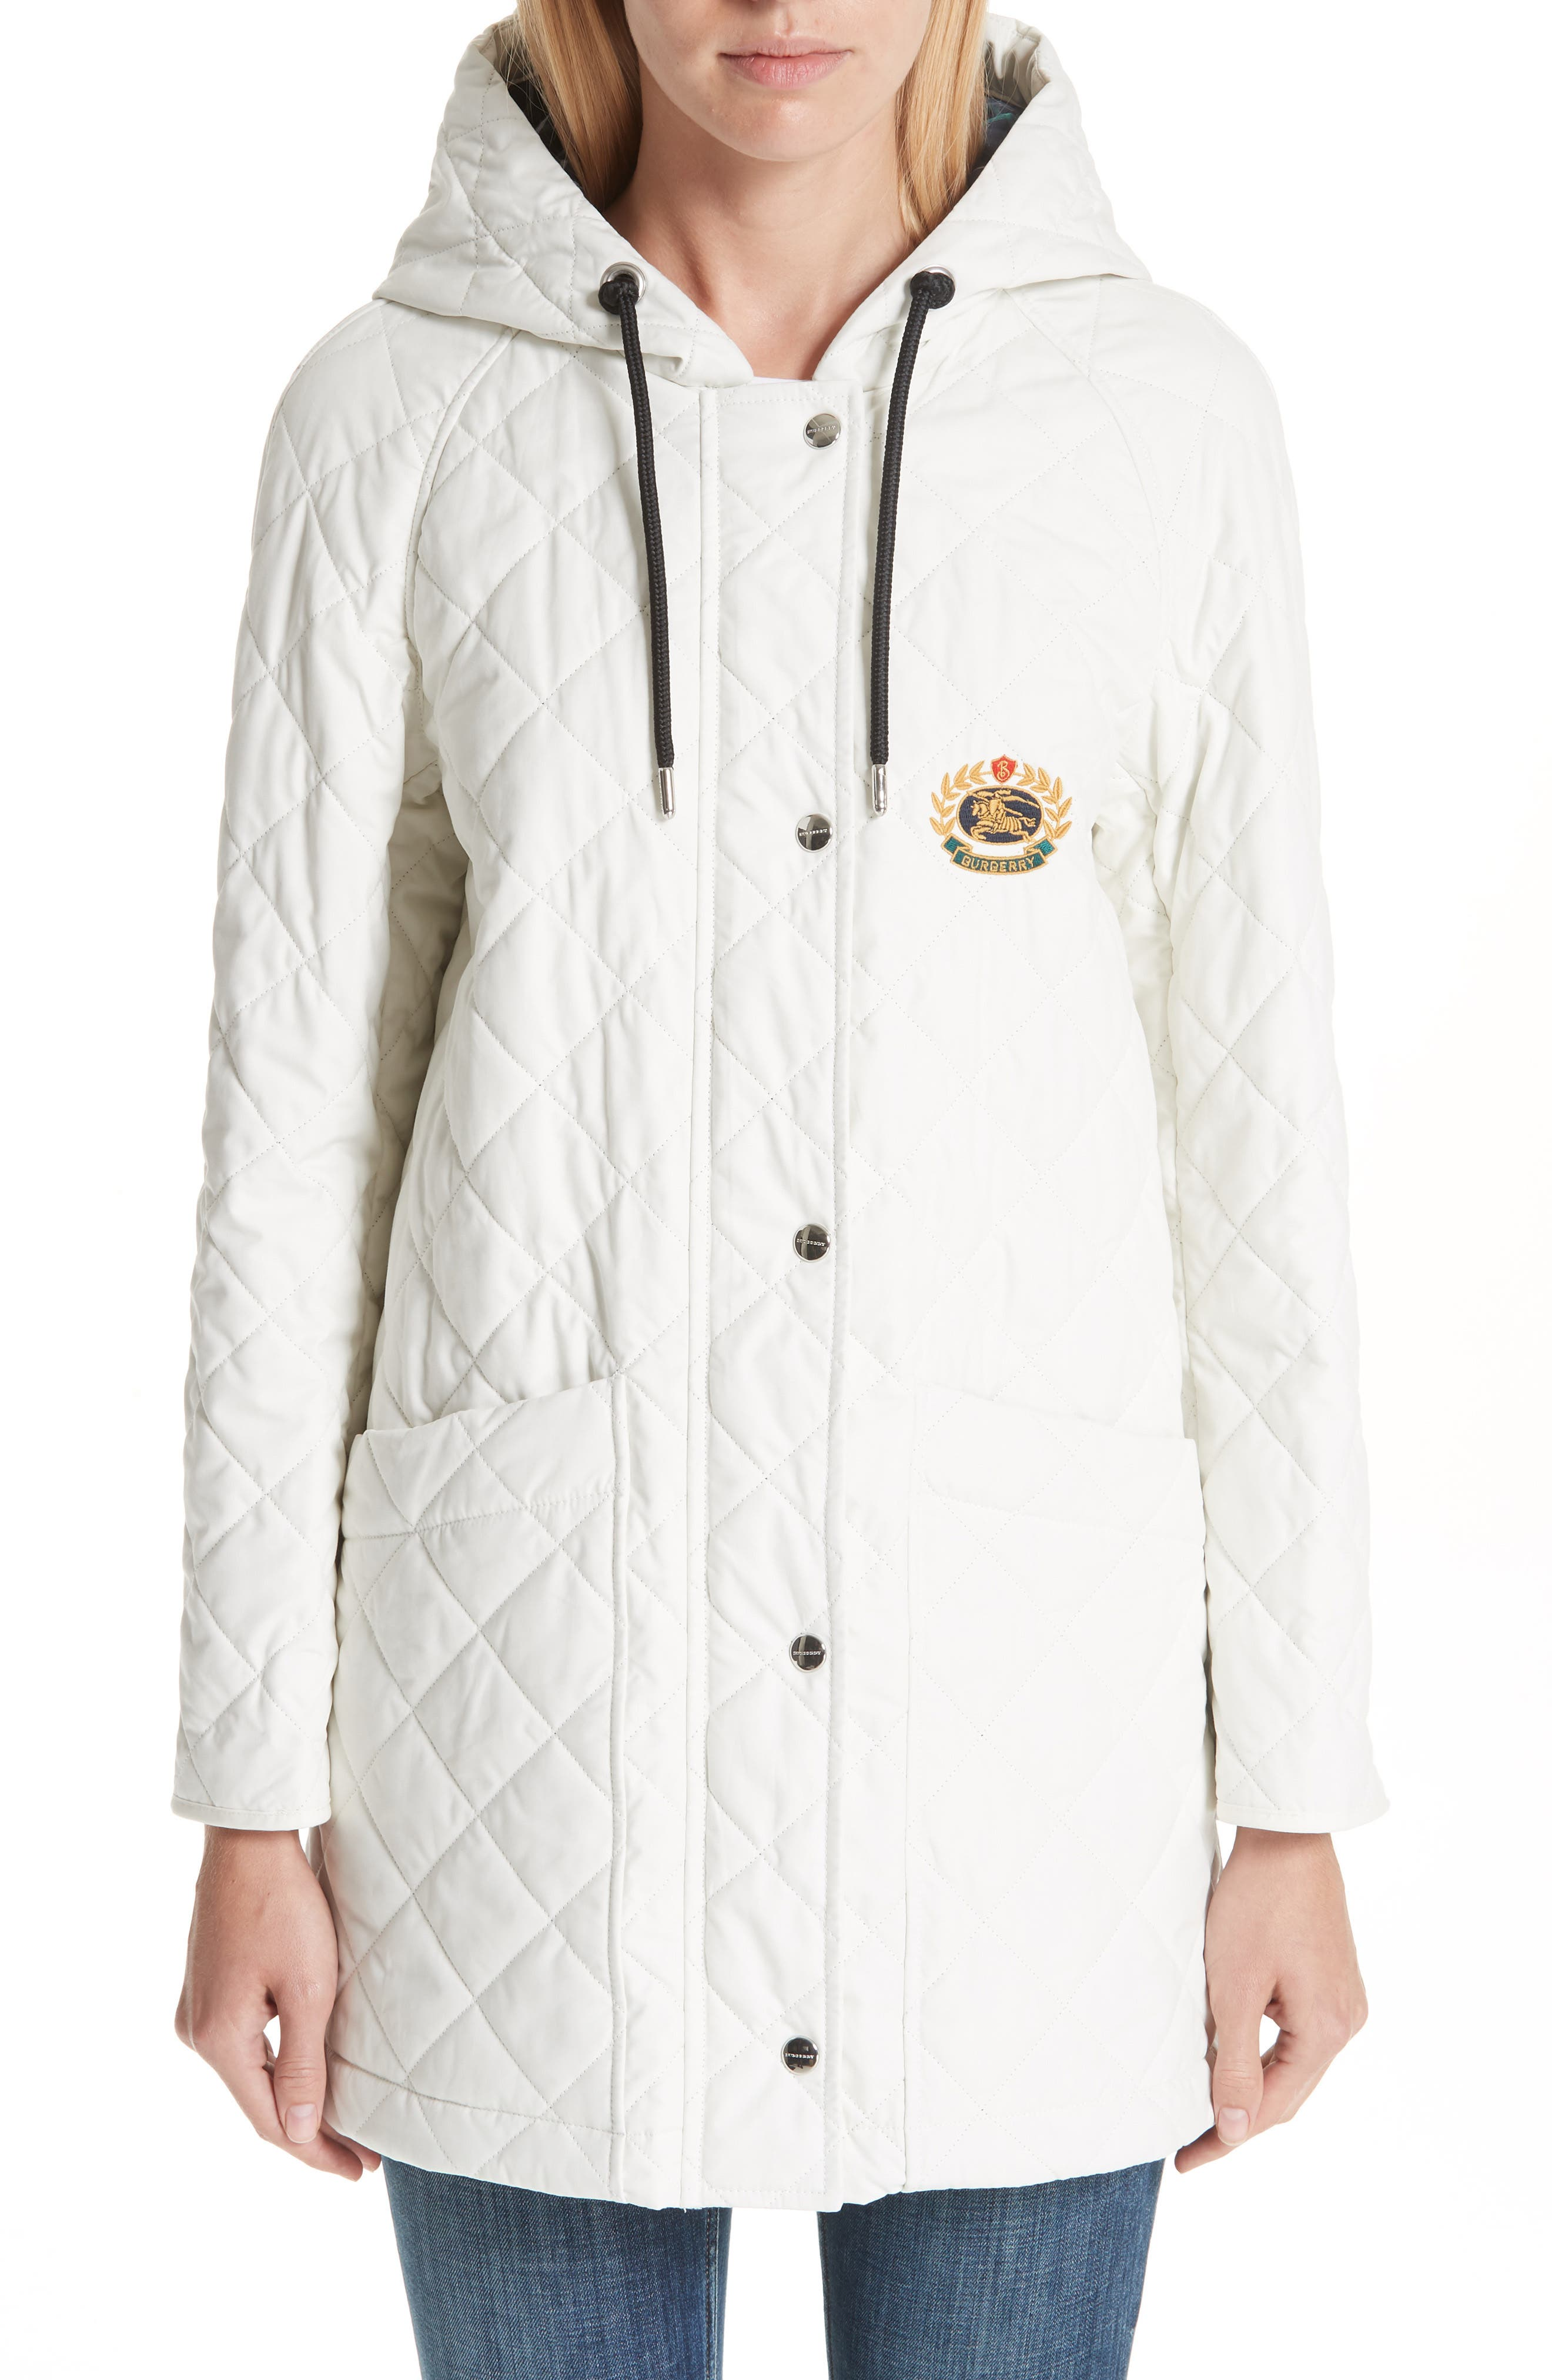 BURBERRY, Roxwell Embroidered Archive Logo Quilted Coat, Main thumbnail 1, color, 100